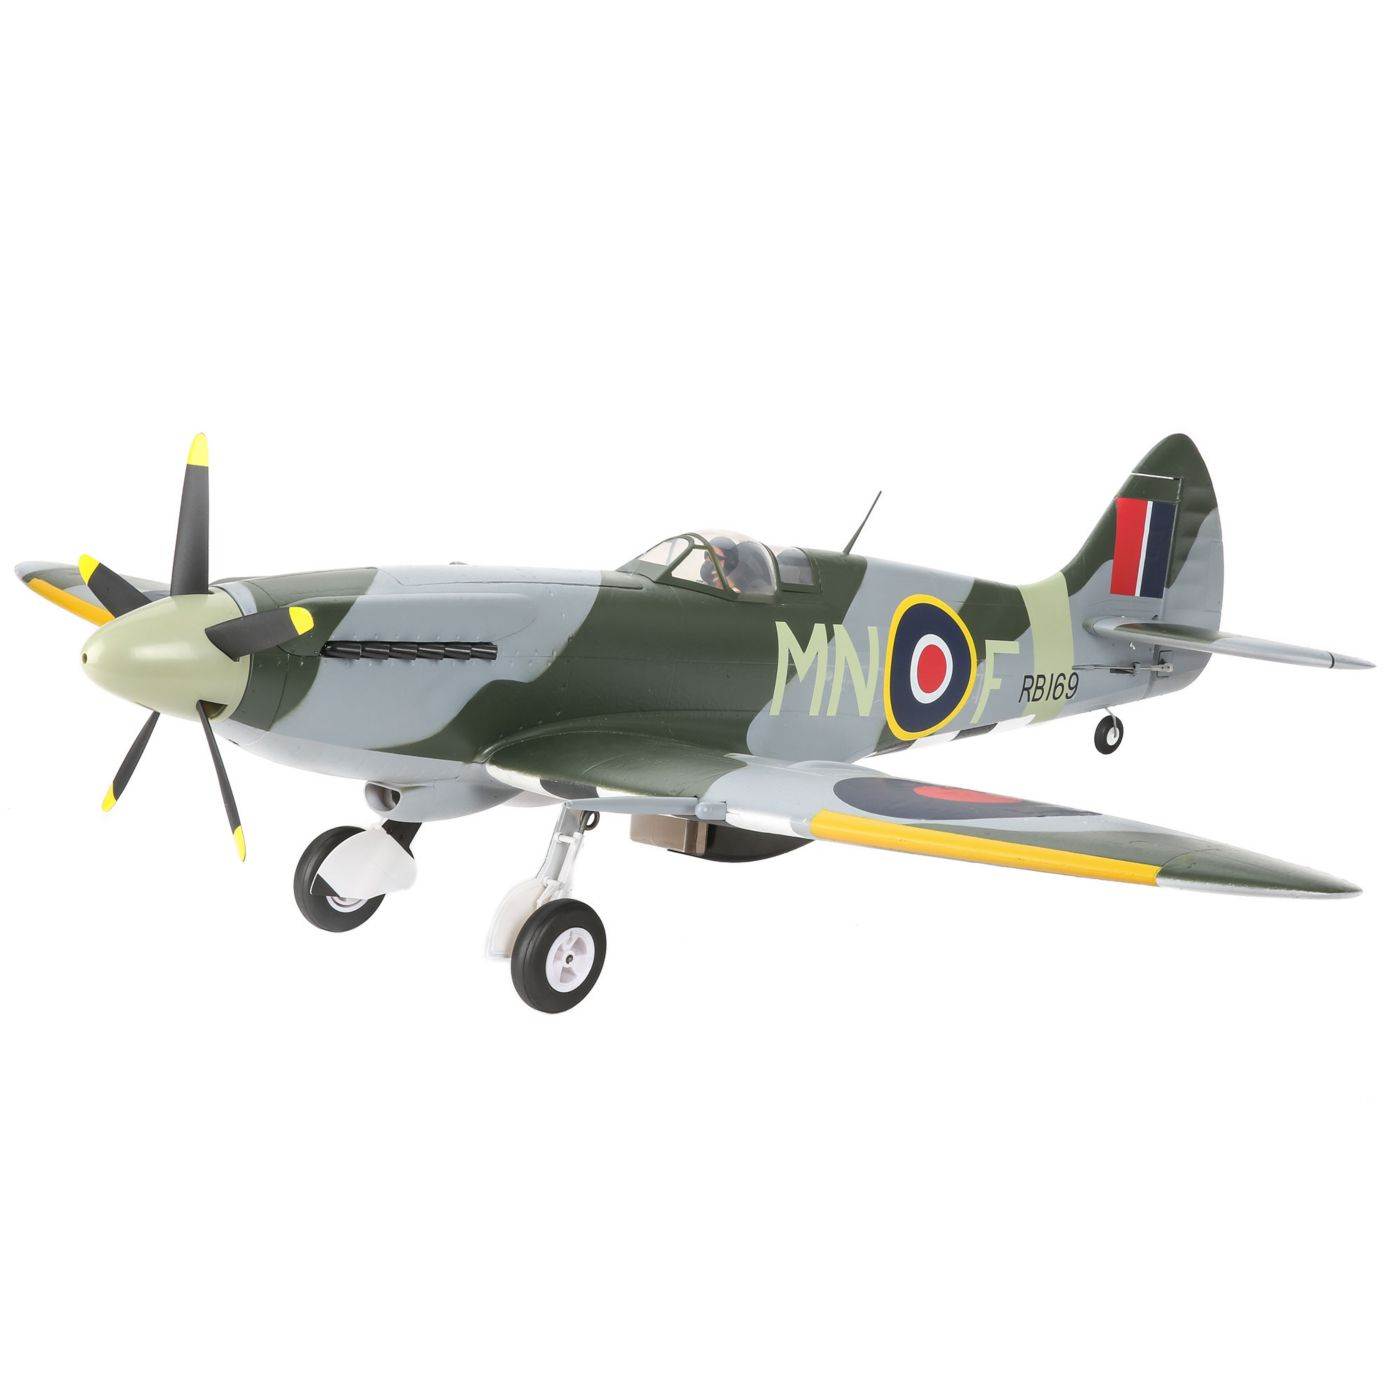 E-flite Spitfire Mk XIV 1.2m BNF Basic - <font color=&quot;red&quot;><b>PREORDER NOW</b></font> - SNHE